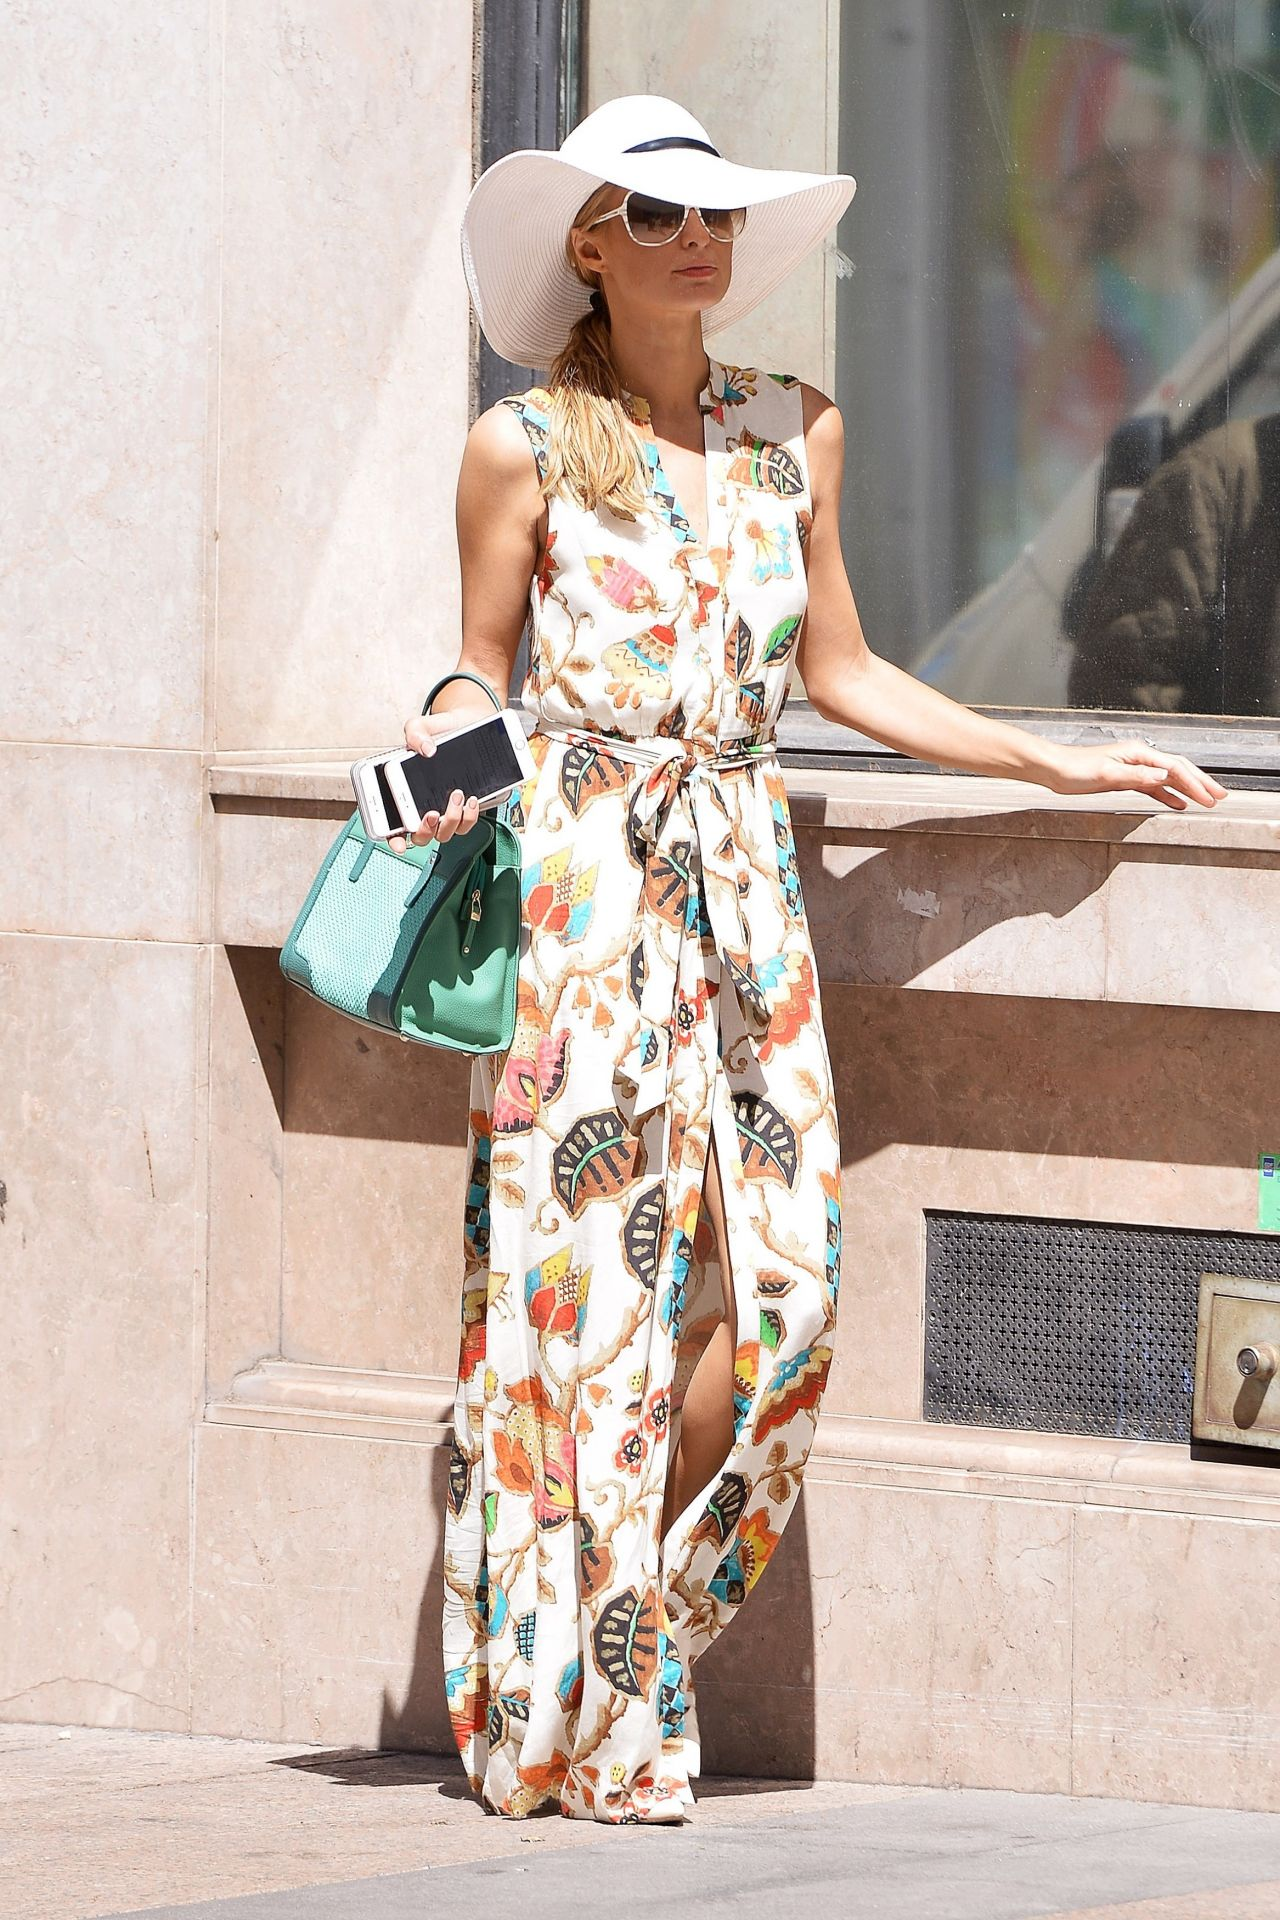 Paris Hilton Summer Outfit Ideas